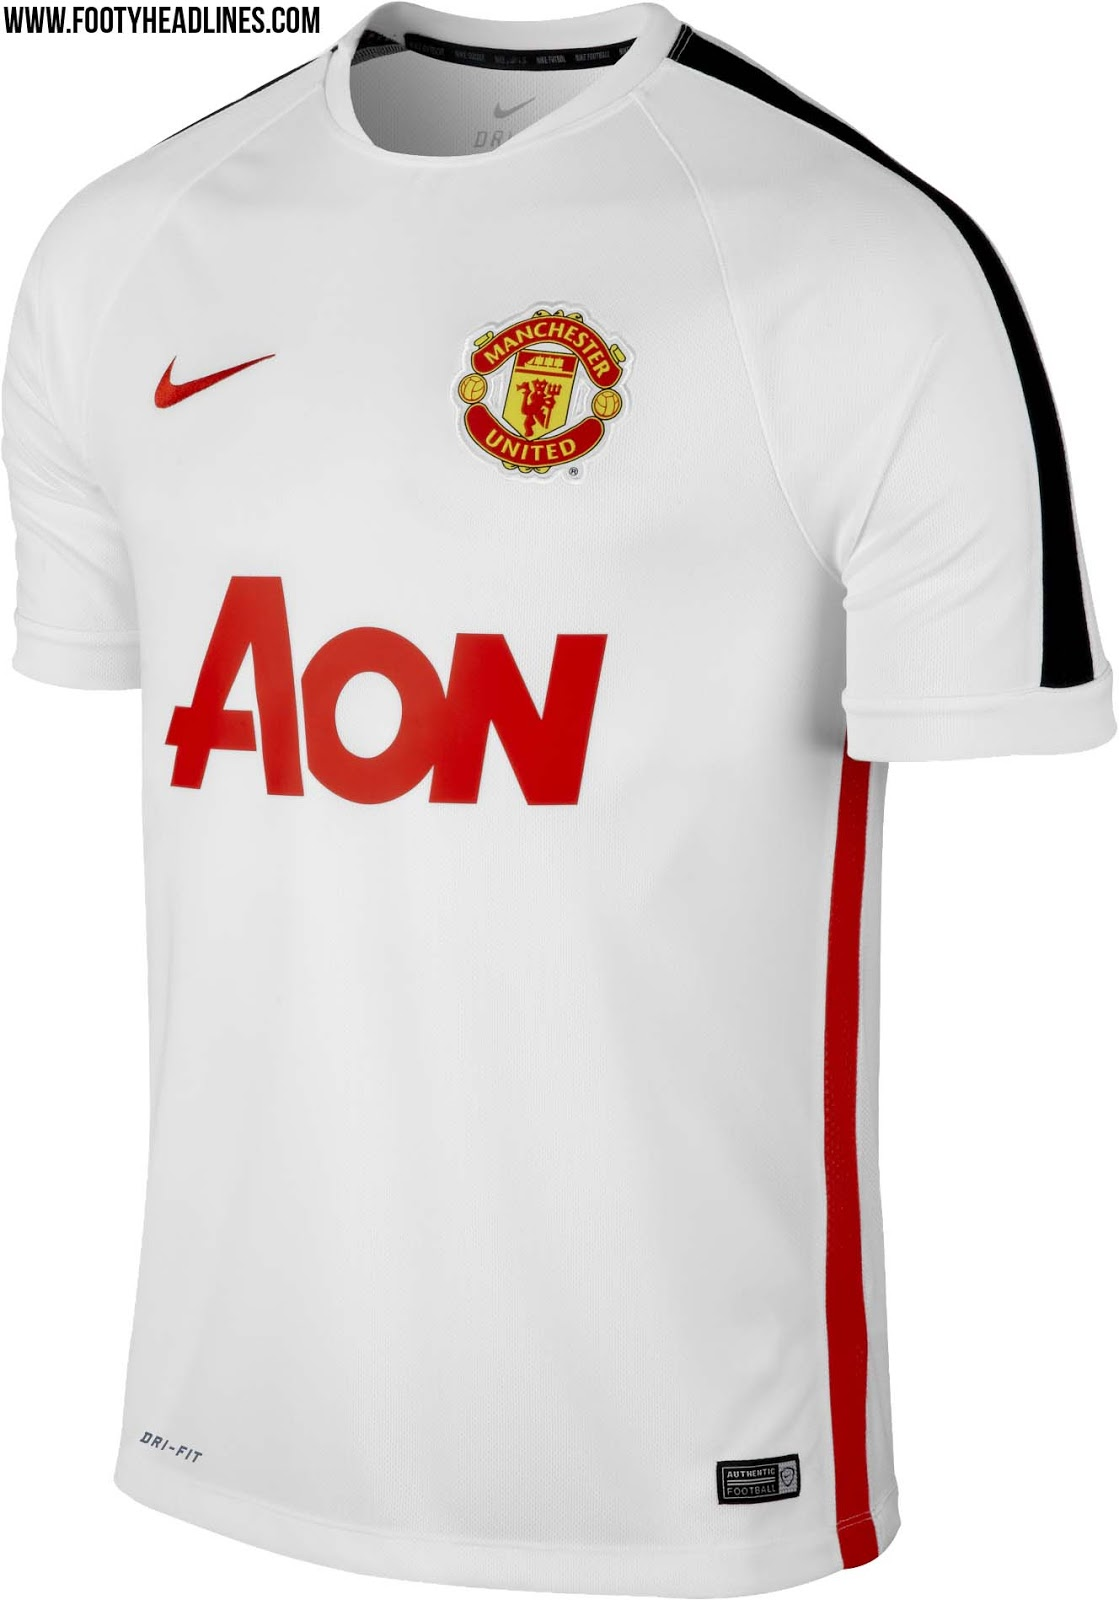 Design t shirt manchester united - The New White Manchester United 2015 Training Soccer Jersey Features A Simple Design The Second Manchester United 2014 2015 Training Shirt Shows Red Logos